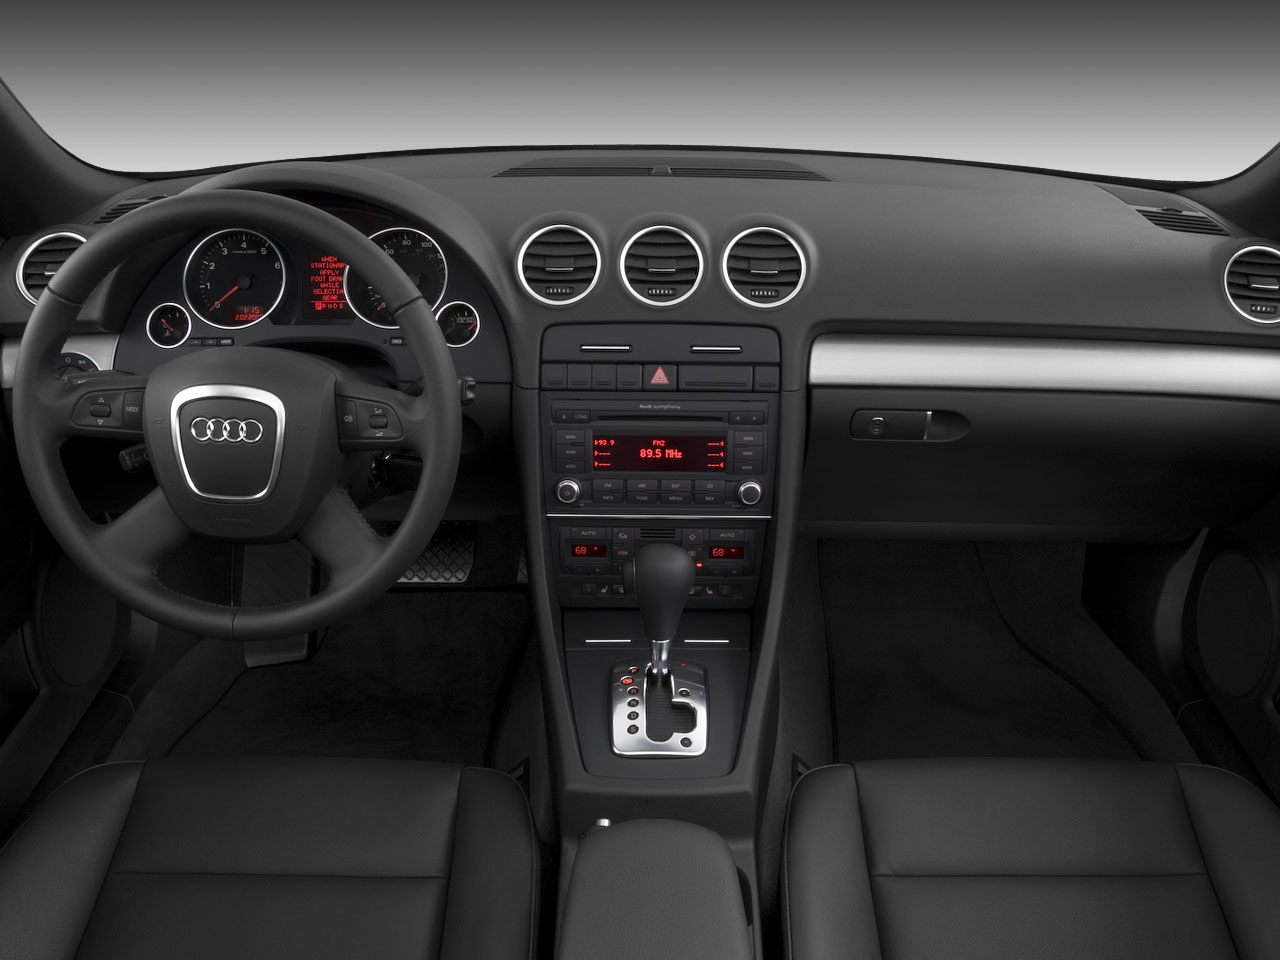 2006 model audi a4 20 t multitronic review